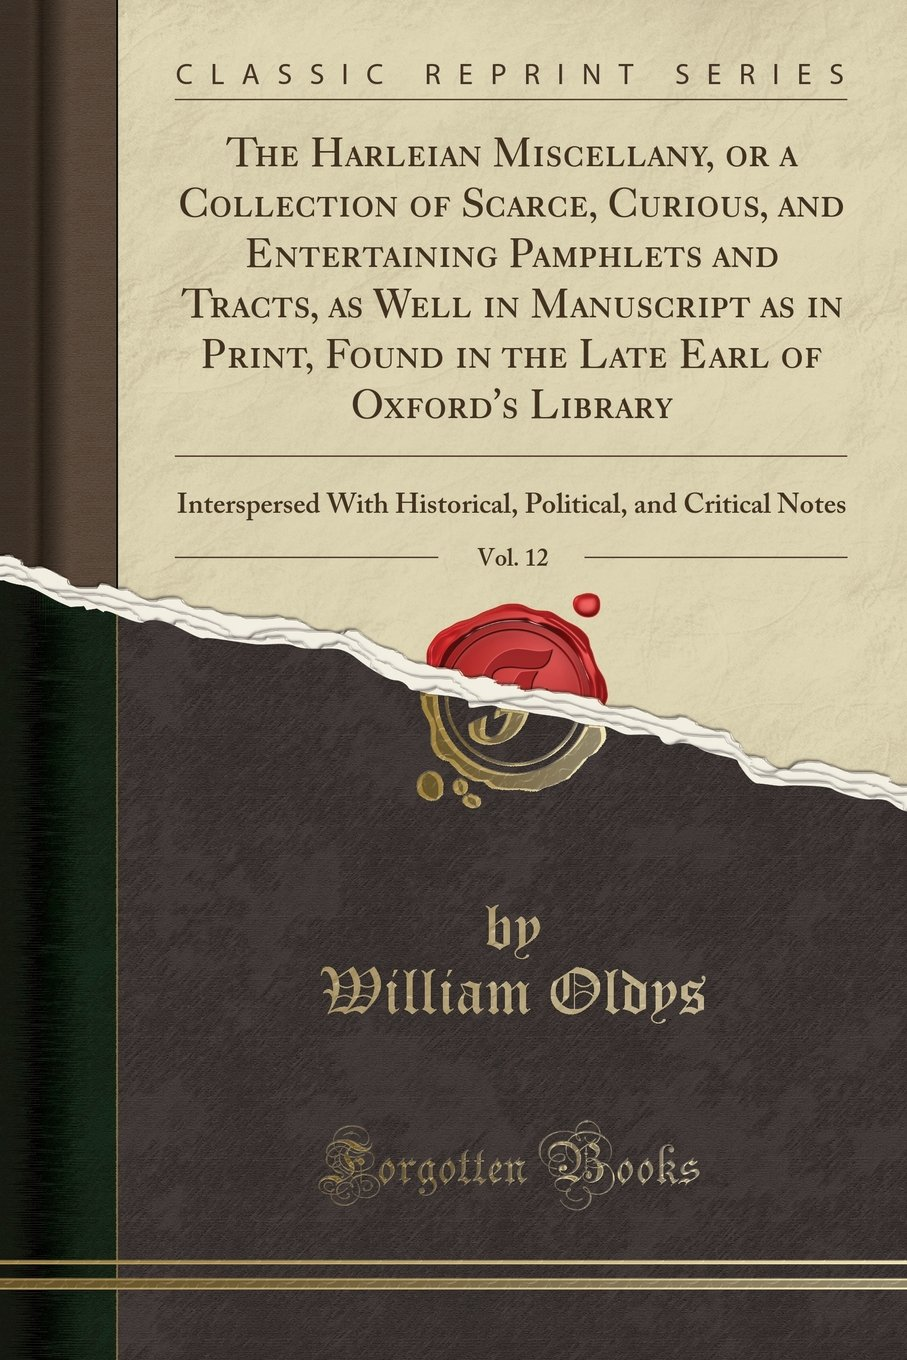 The Harleian Miscellany, or a Collection of Scarce, Curious, and Entertaining Pamphlets and Tracts, as Well in Manuscript as in Print, Found in the ... Historical, Political, and Critical Notes pdf